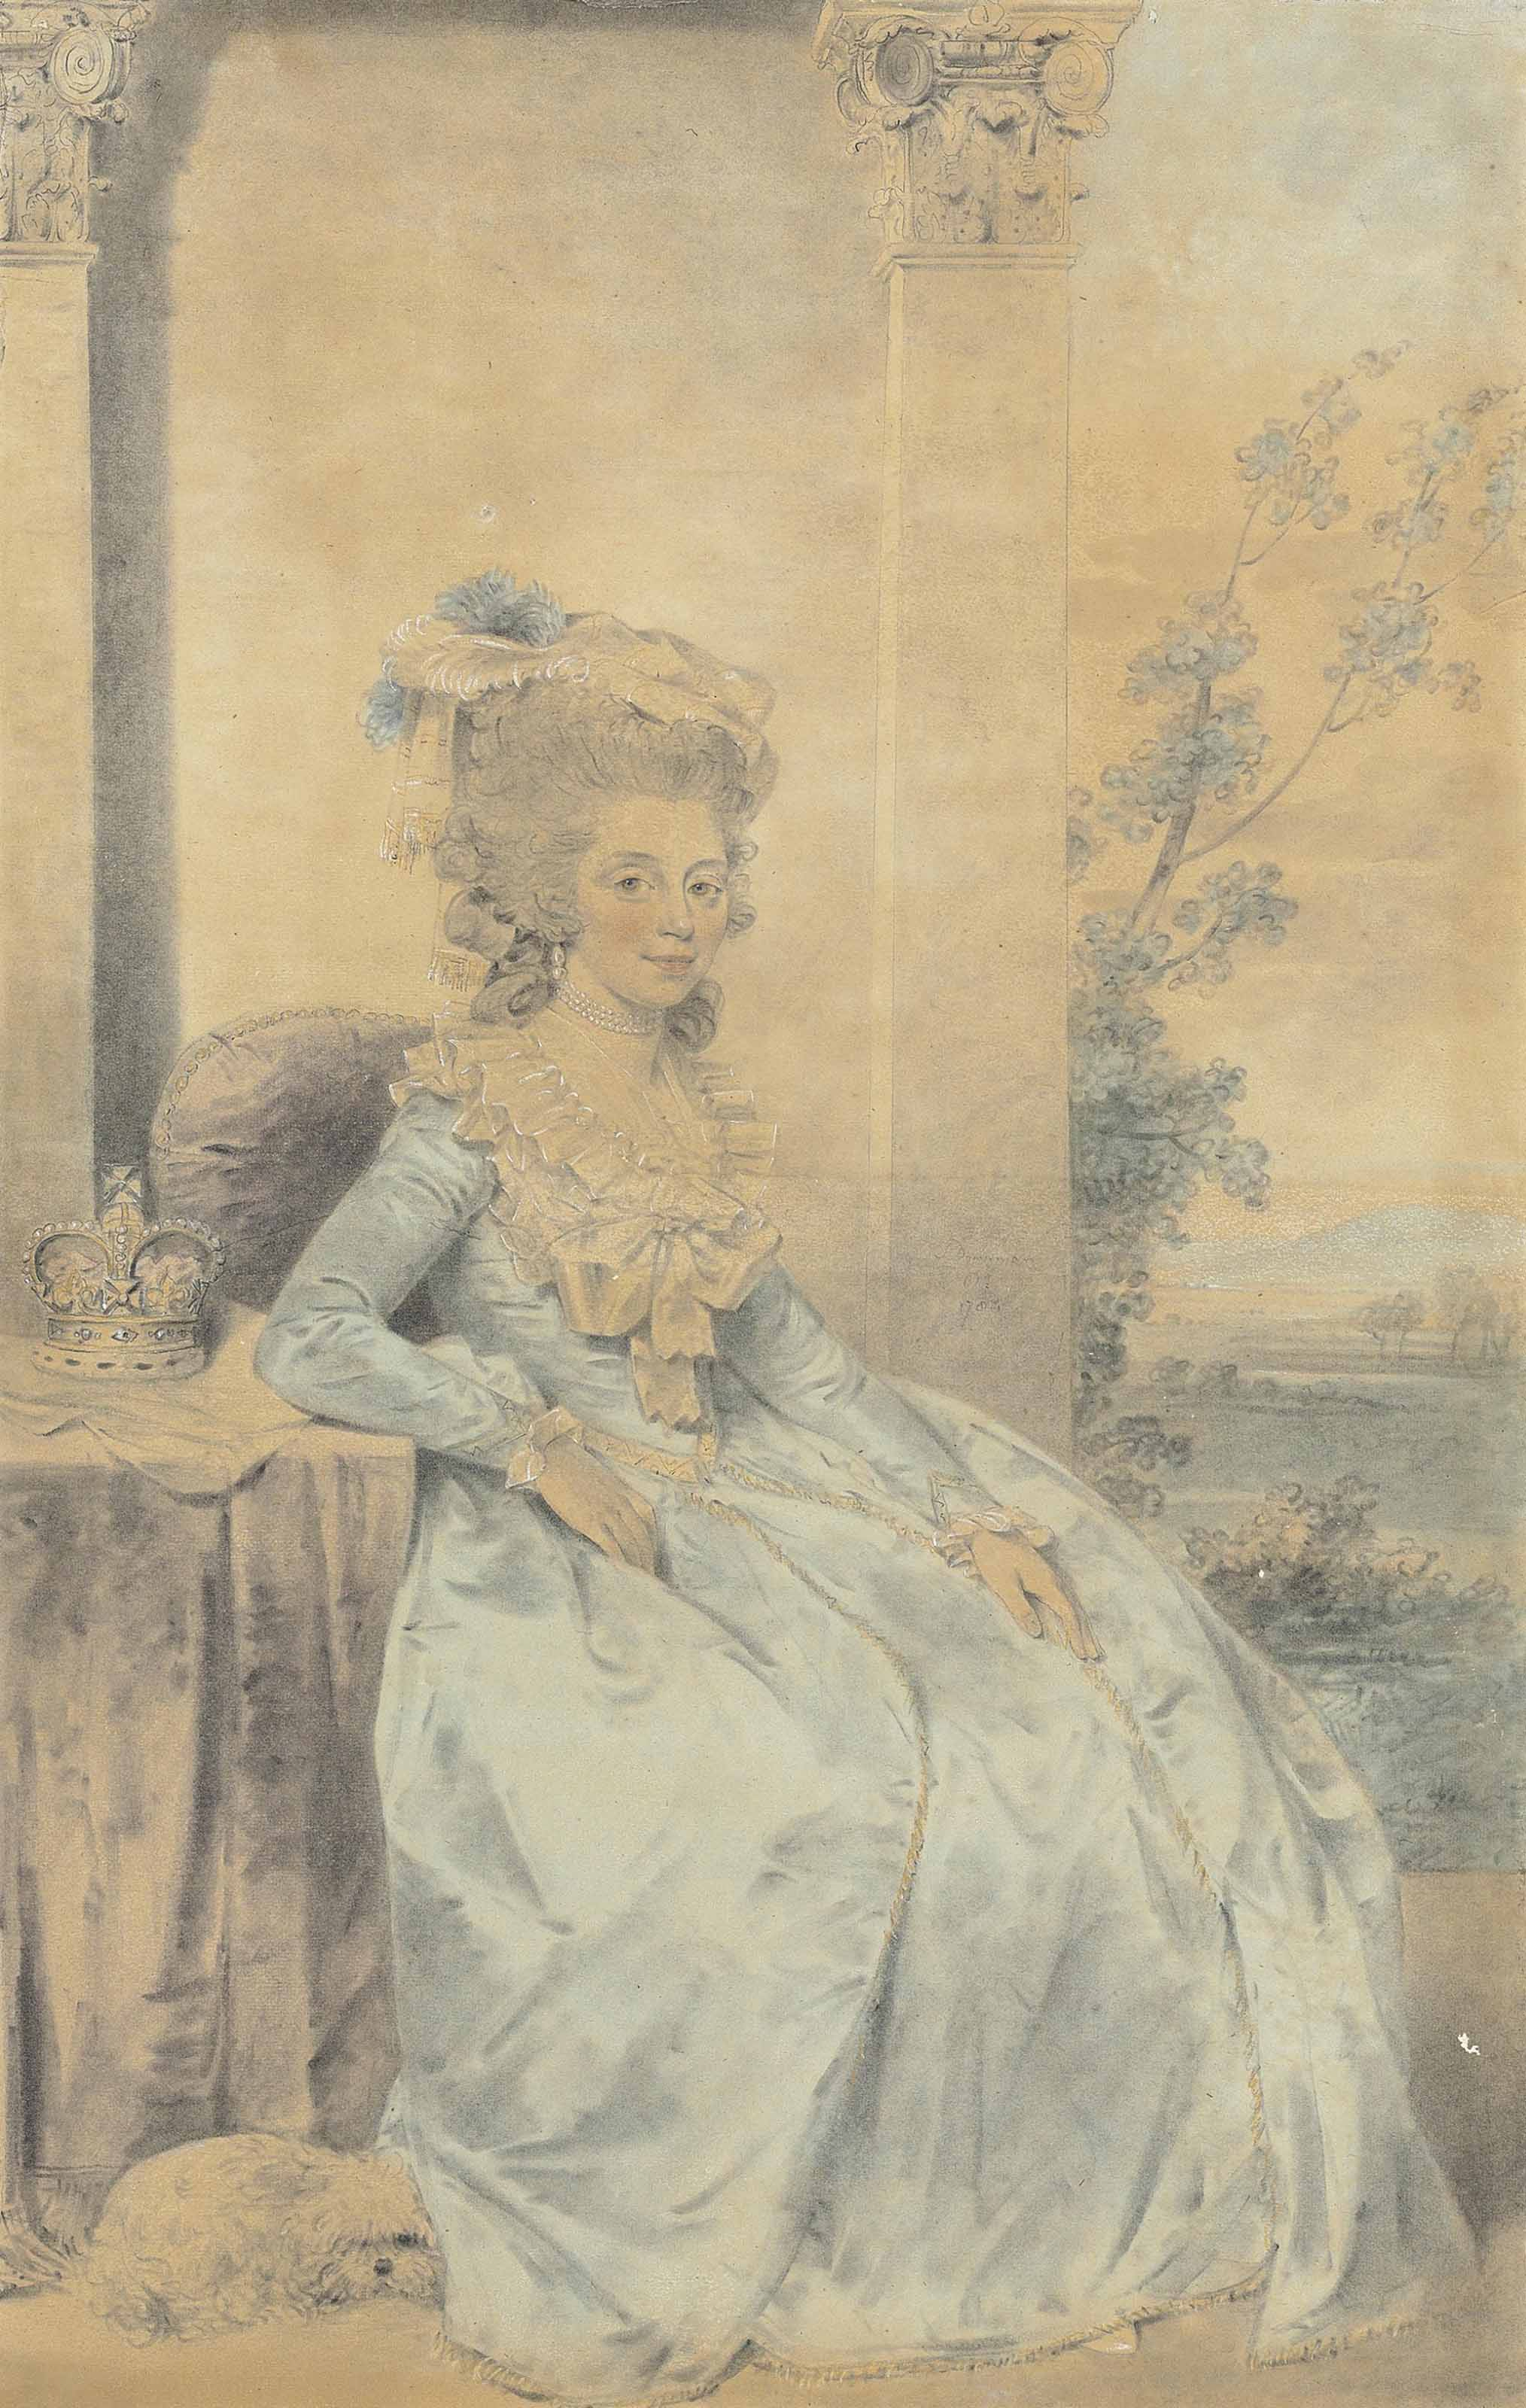 Portrait of Queen Charlotte, small full-length, wearing a pale blue dress, seated, with a small dog at her feet, and an extensive landscape beyond